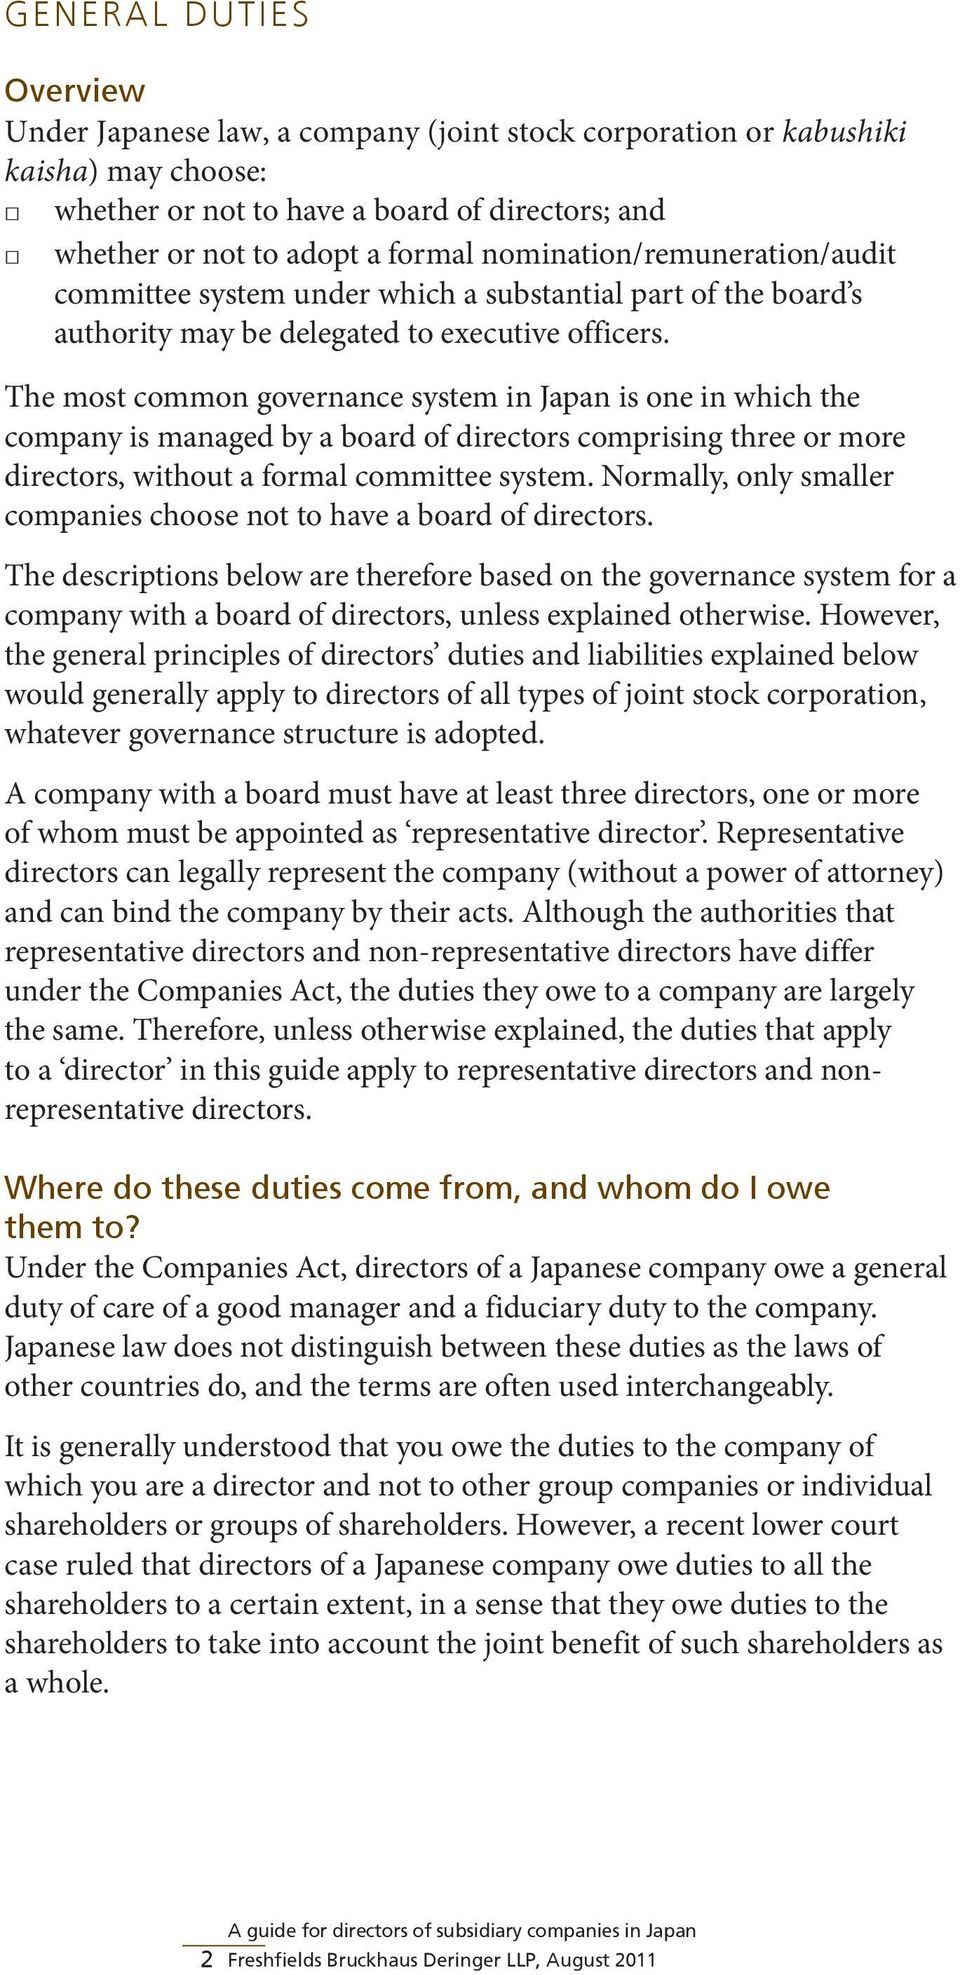 The most common governance system in Japan is one in which the company is managed by a board of directors comprising three or more directors, without a formal committee system.